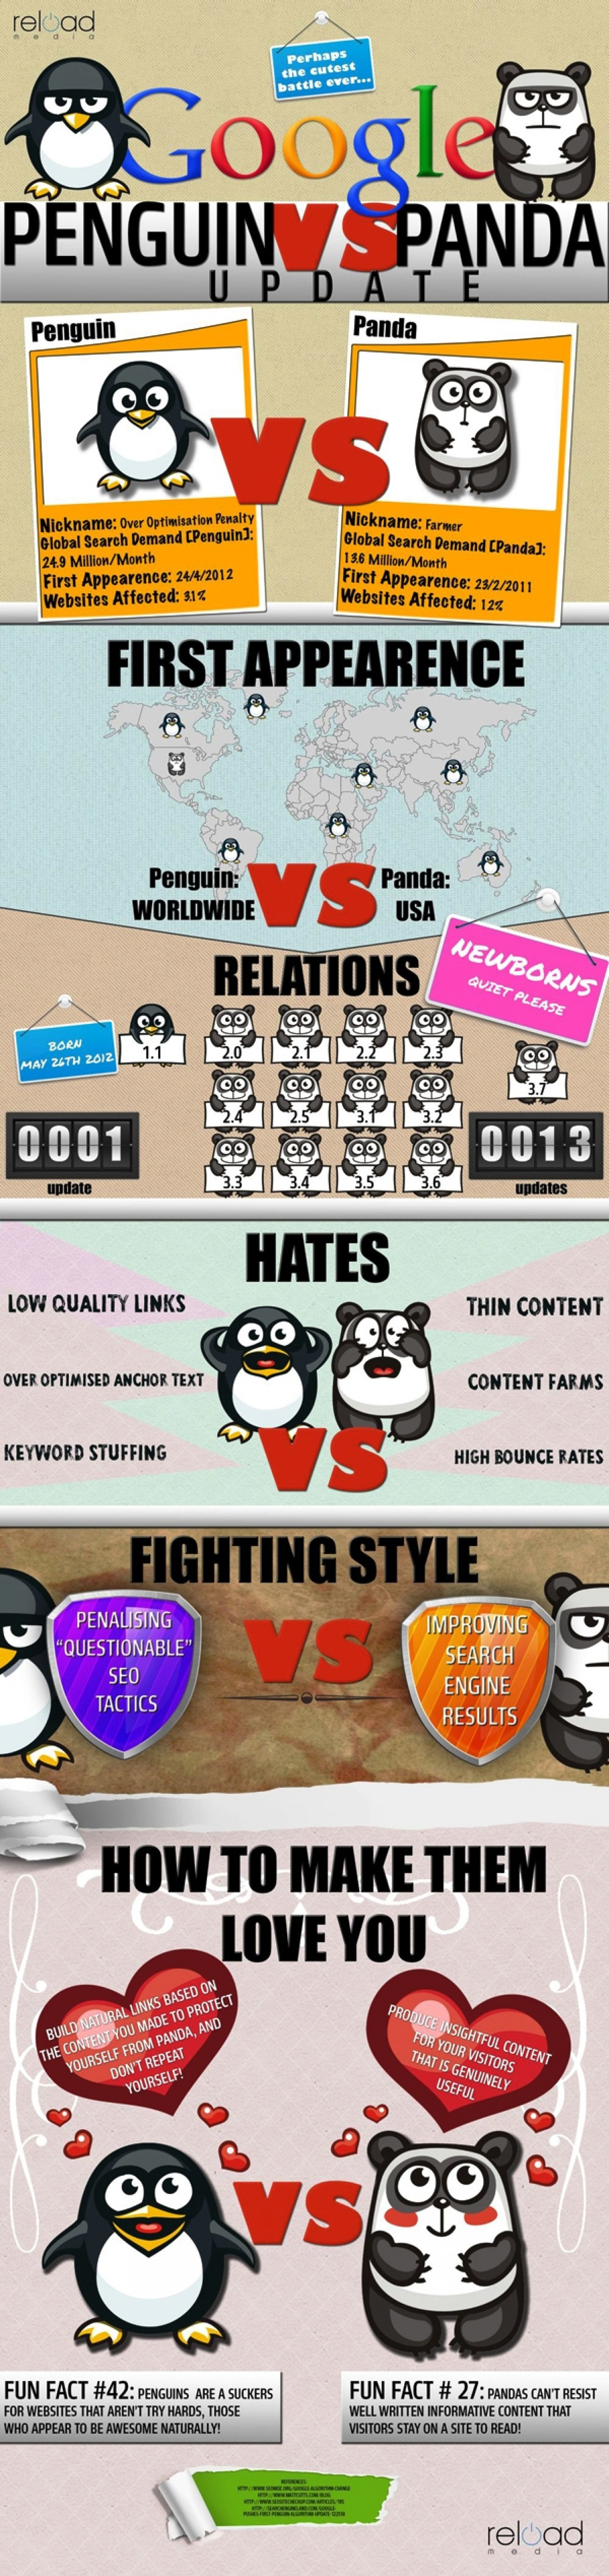 Do You want To Know What Is Google Pengin Vs Panda By EBriks Infotech Infographic